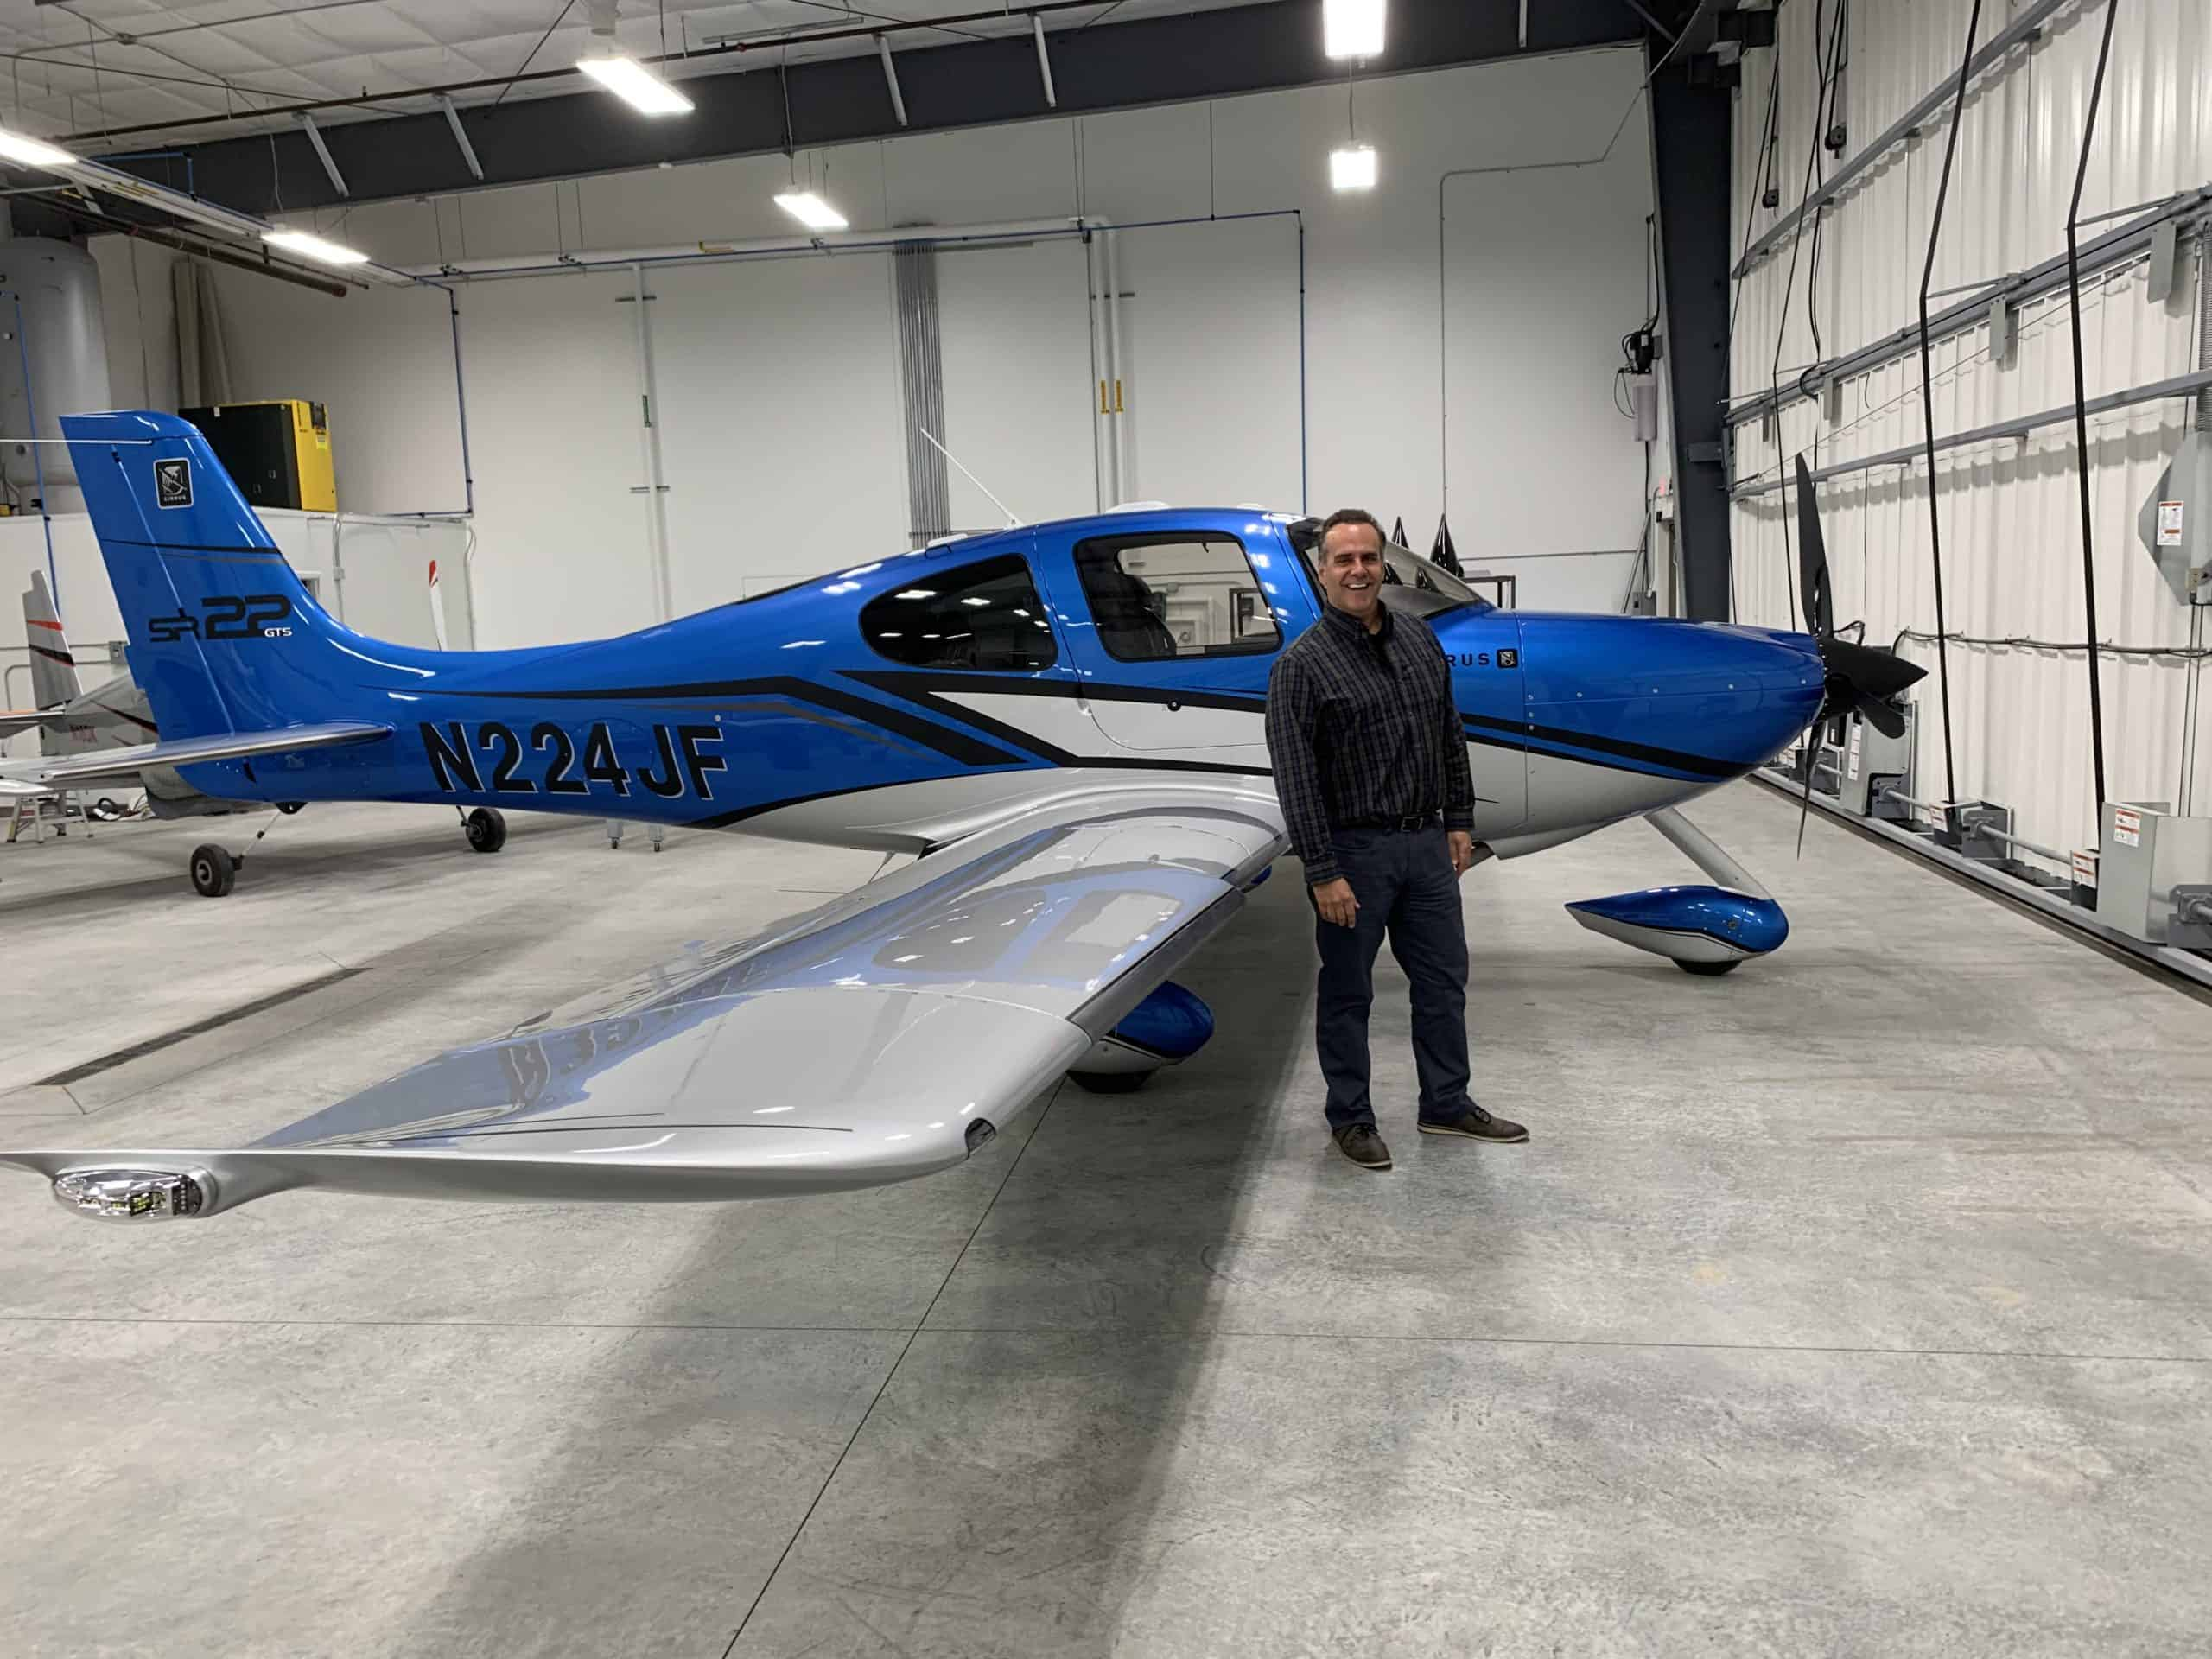 owner and his aircraft